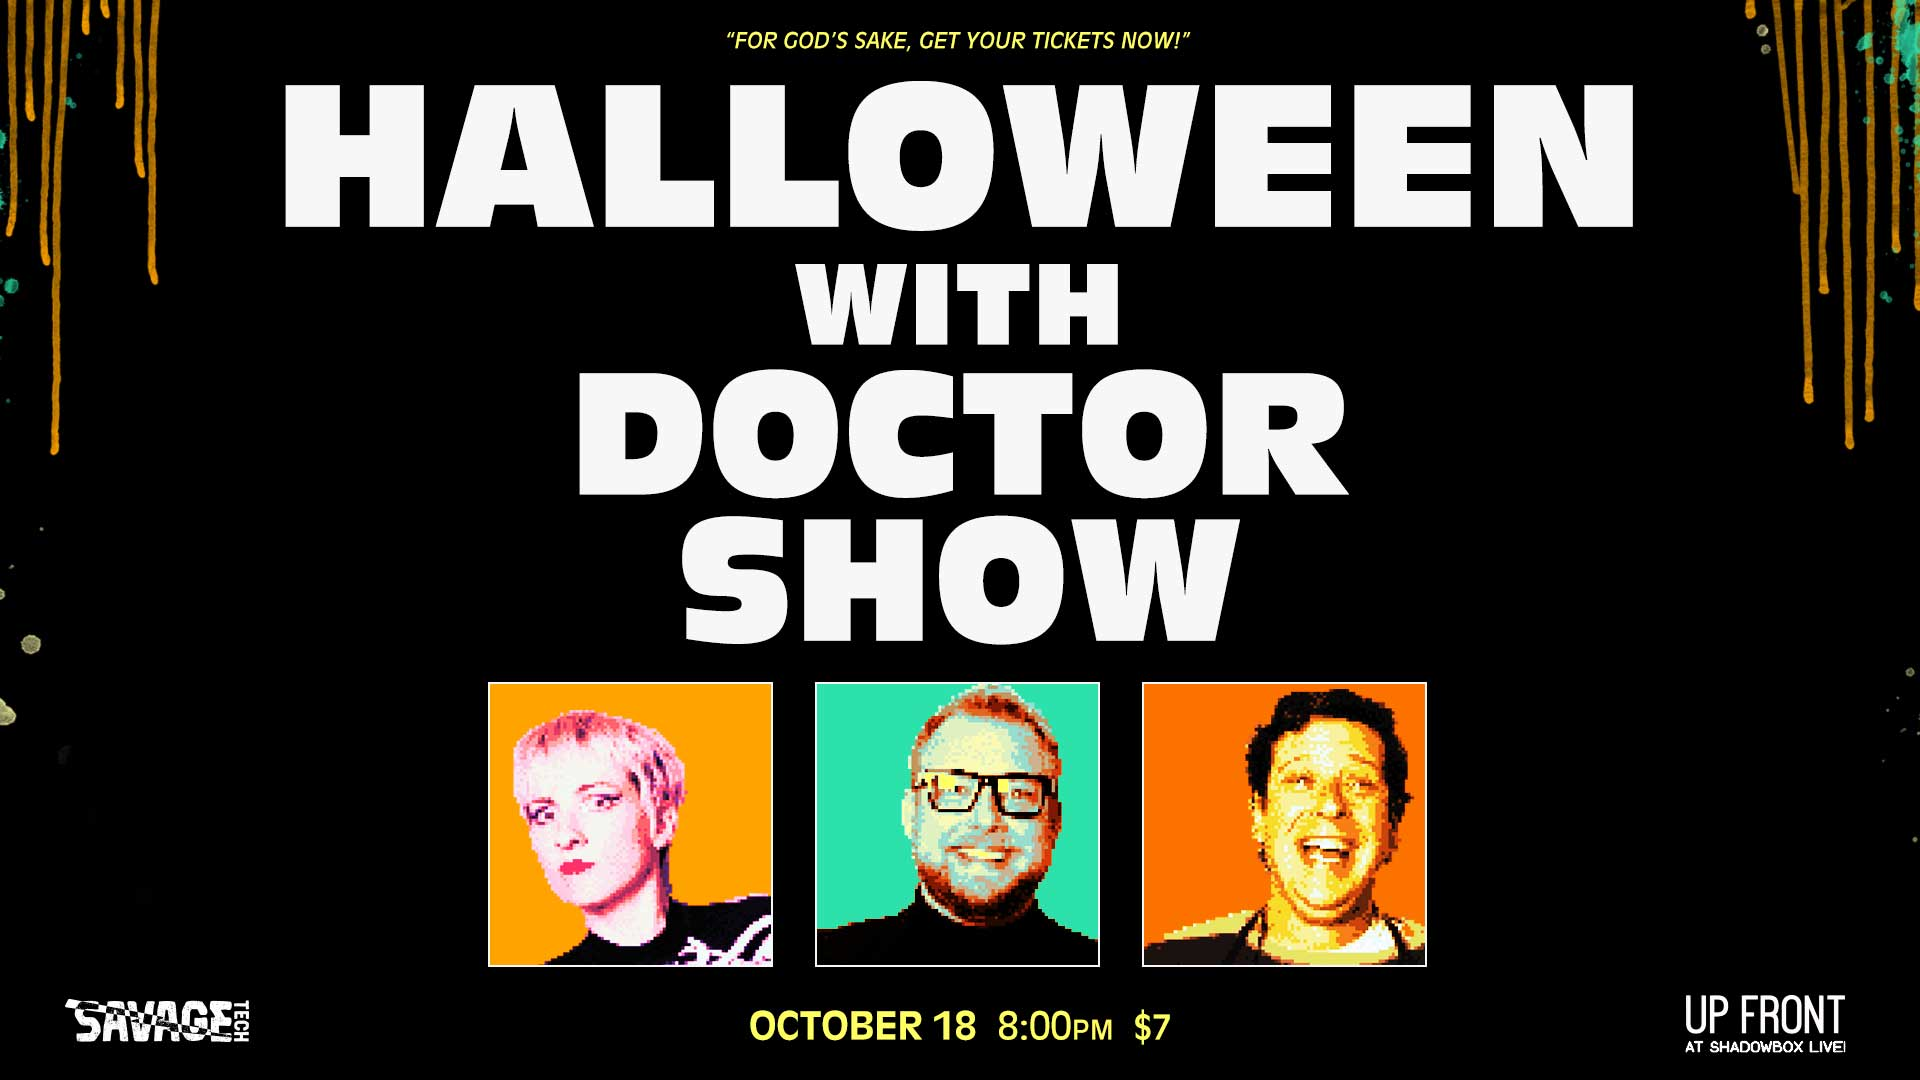 Halloween with Doctor Show // Oct 18 @ 8PM // Up Front at Shadowbox Live